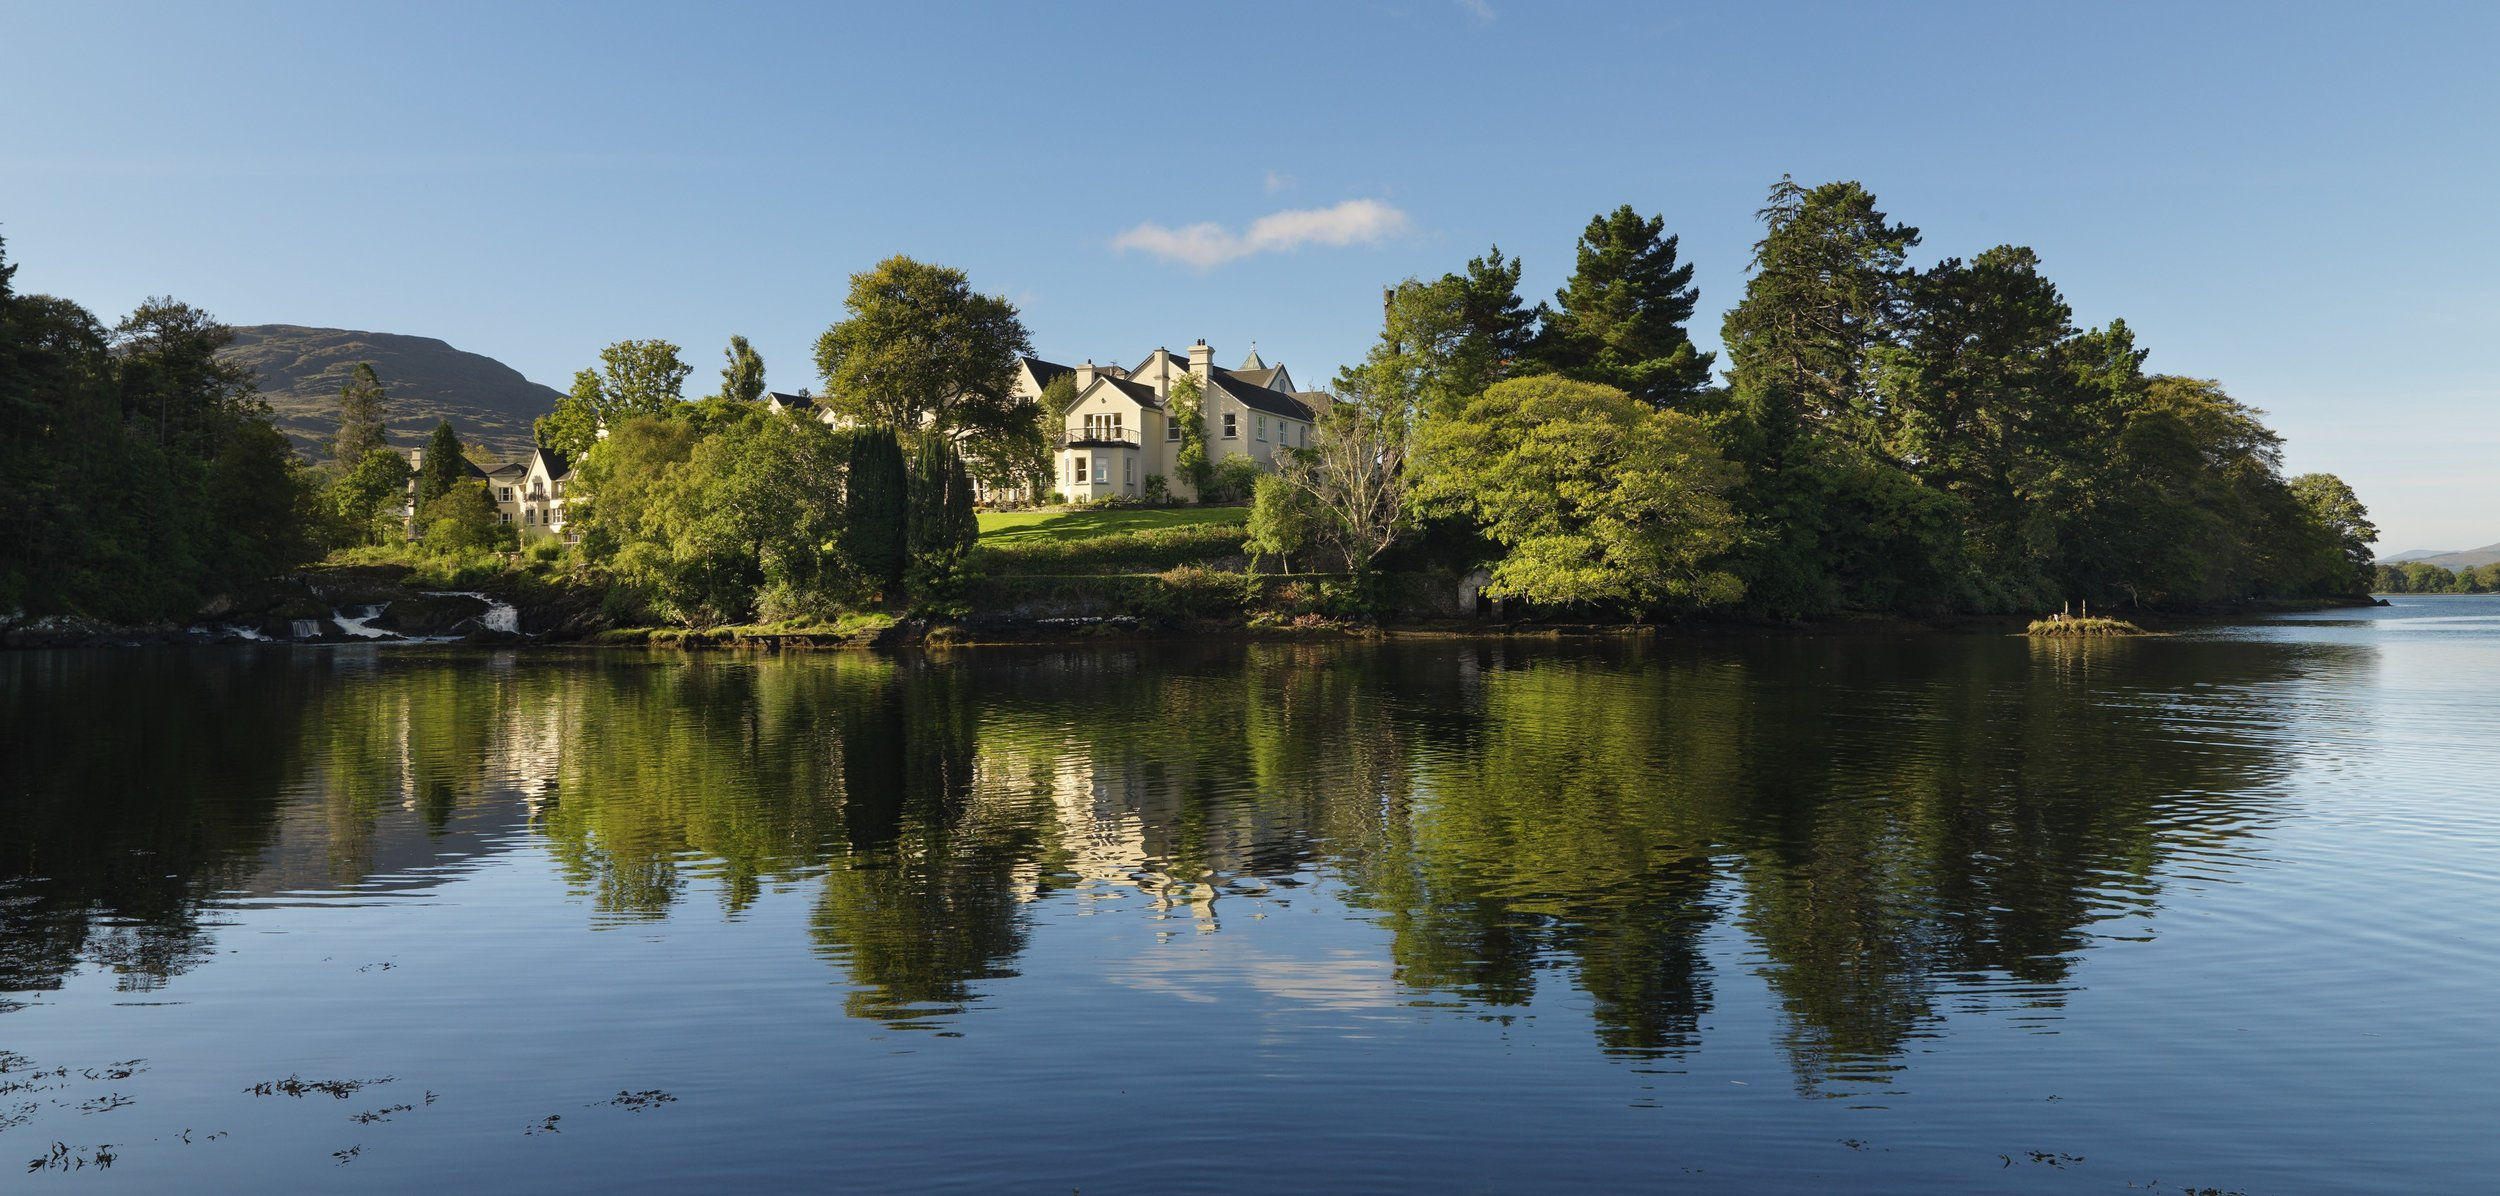 SHEEN FALLS LODGE - KENMARE, COUNTY KERRY - Situated on a 300 acre estate overlooking Kenmare Bay, Sheen Falls Lodge is on the doorstep of the magical south west of Ireland, perfectly placed for exploring the world famous Ring of Kerry, Beara Peninsula and Killarney Lakes.